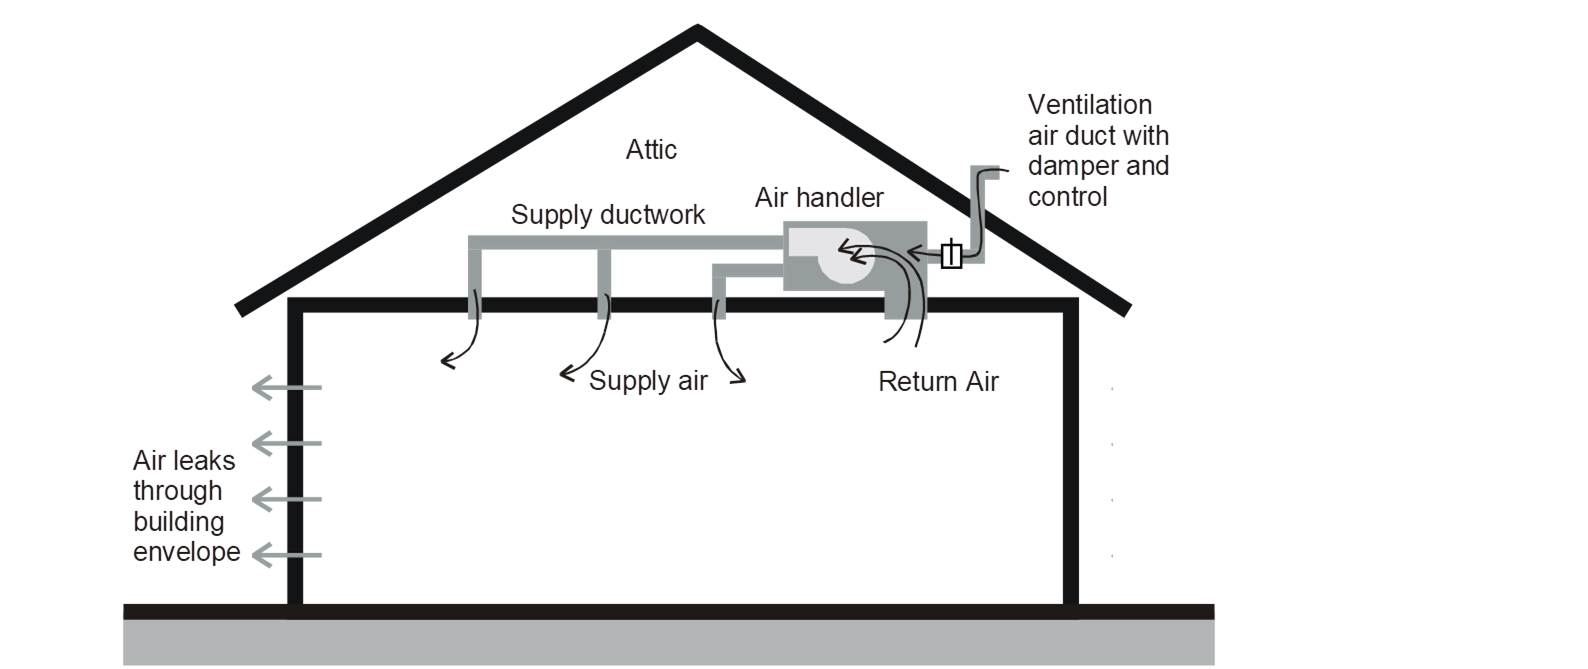 4 6 indoor air quality and mechanical ventilationfigure 4 29 supply ventilation example